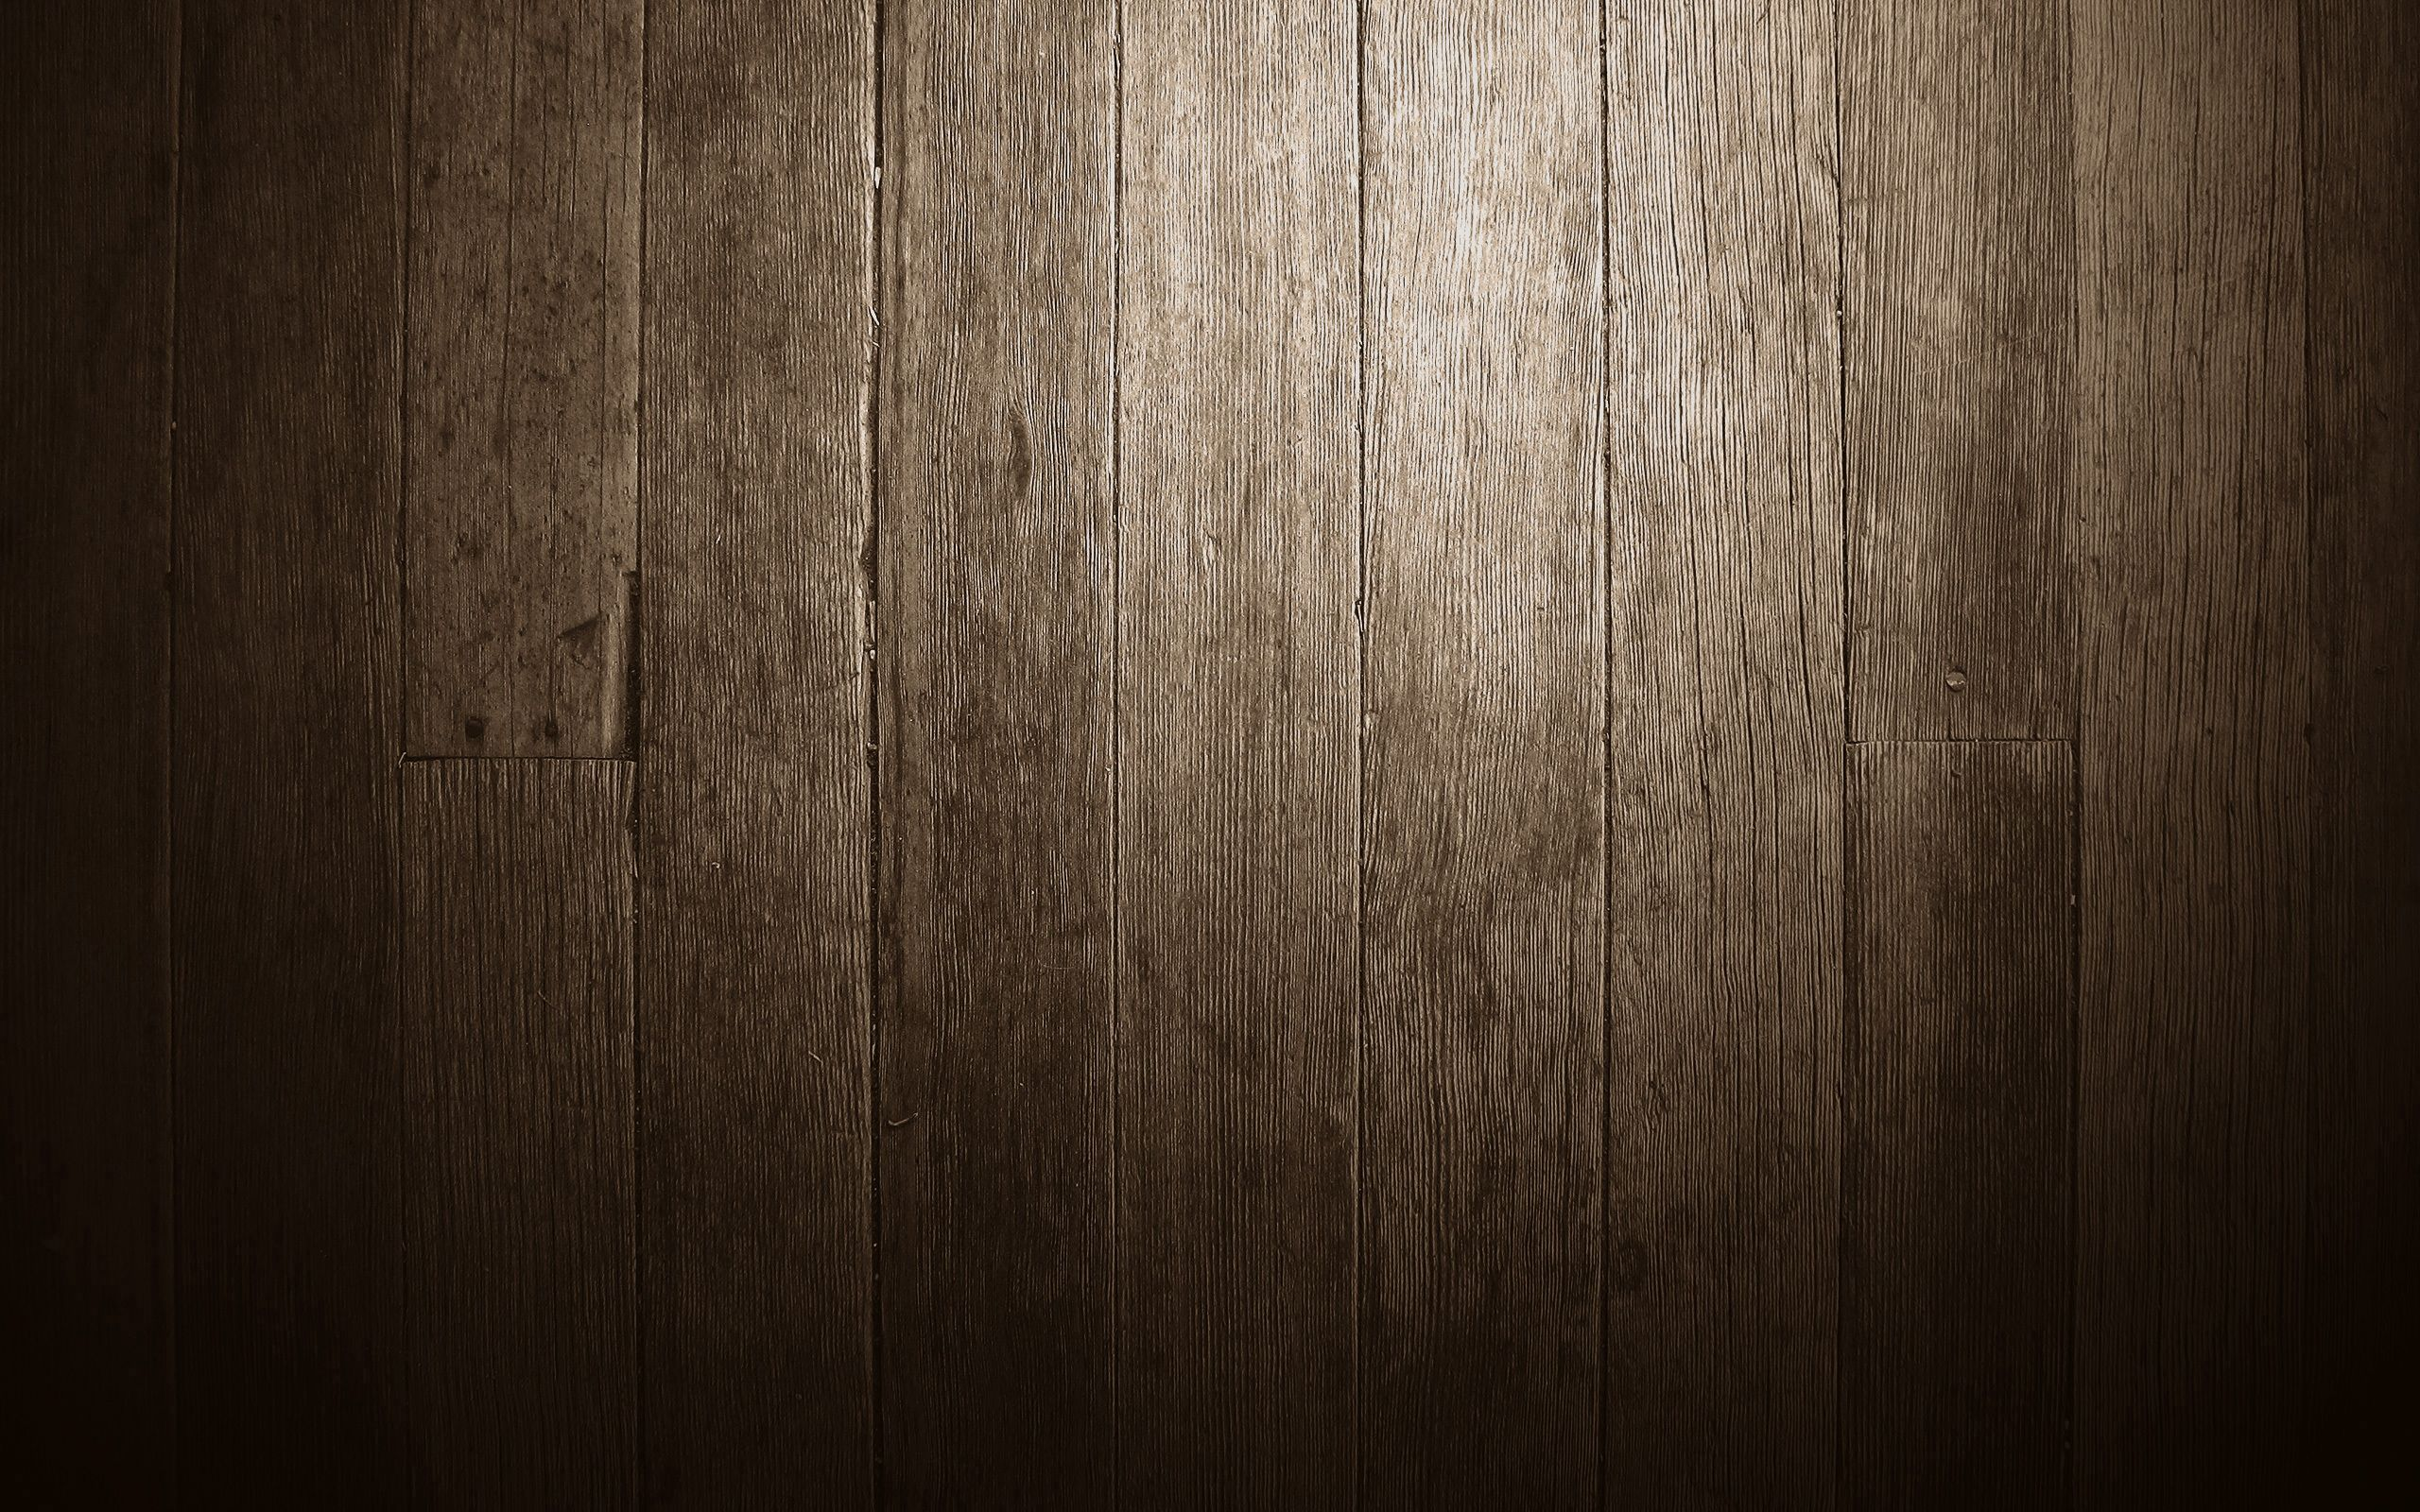 132776 Screensavers and Wallpapers Wooden for phone. Download Background, Dark, Wood, Wooden, Texture, Textures, Surface pictures for free